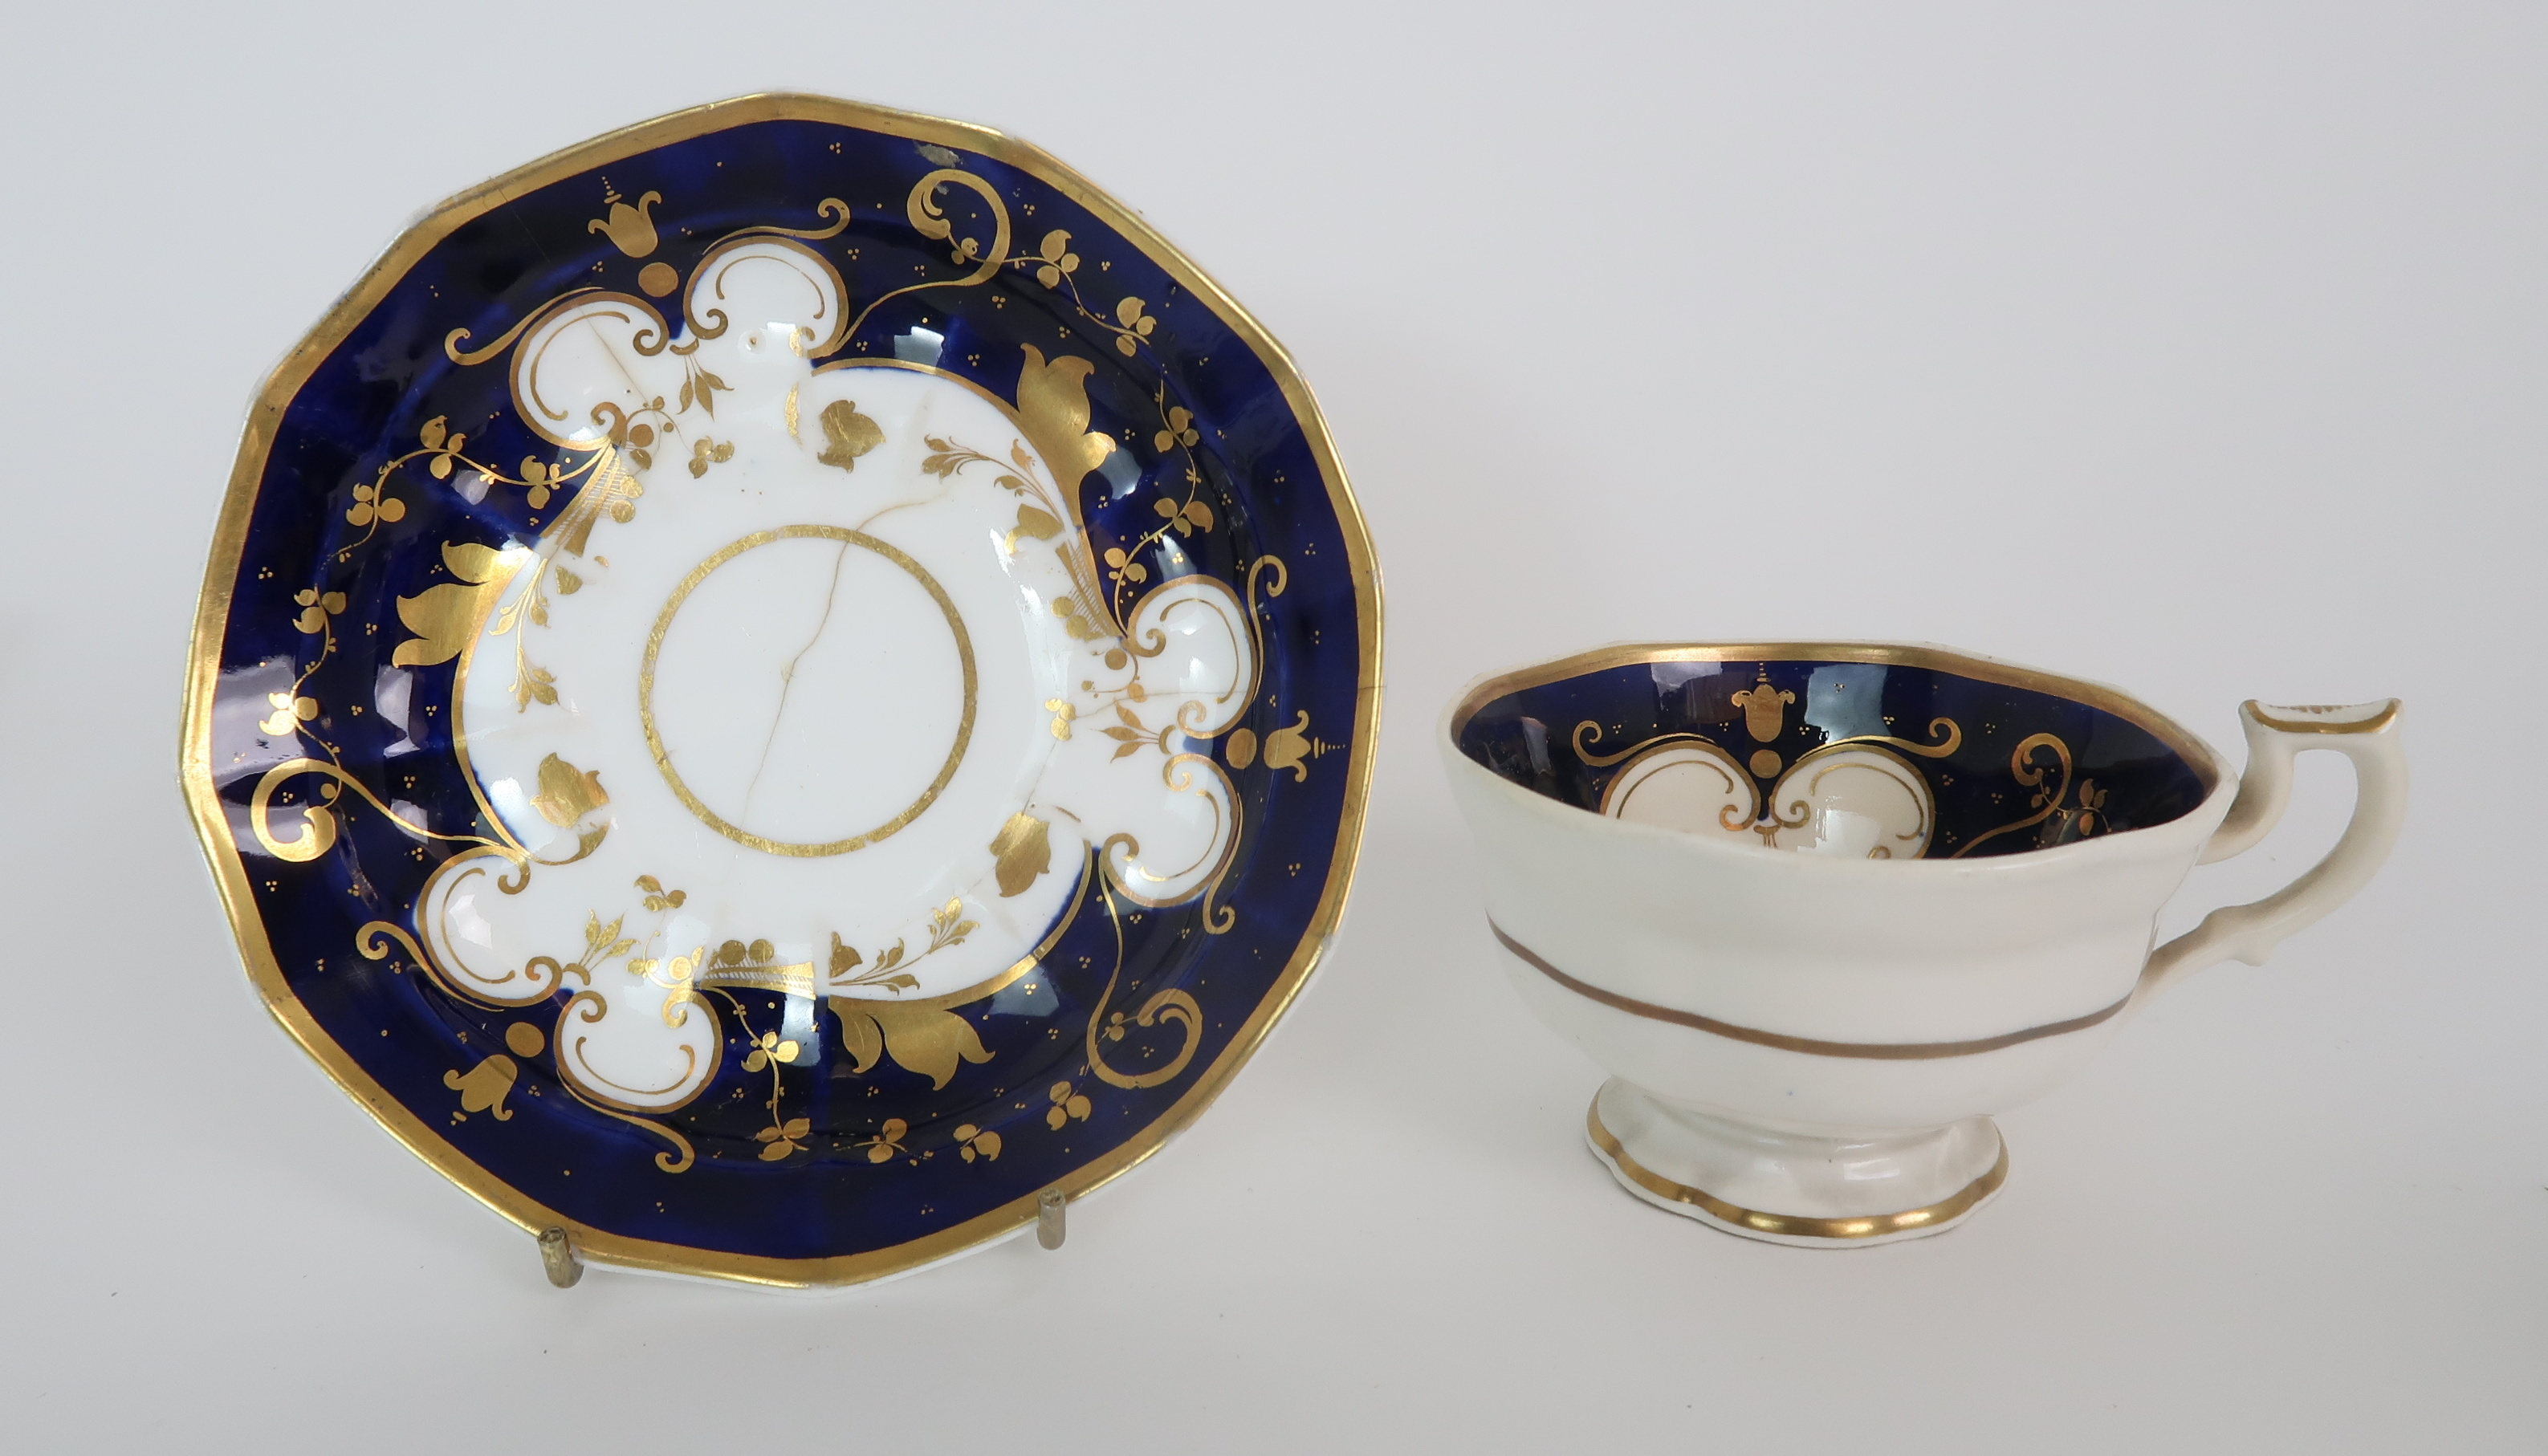 A COLLECTION OF 19TH CENTURY ENGLISH BLUE AND GILT DECORATED TEA AND COFFEE WARES including a - Image 4 of 23